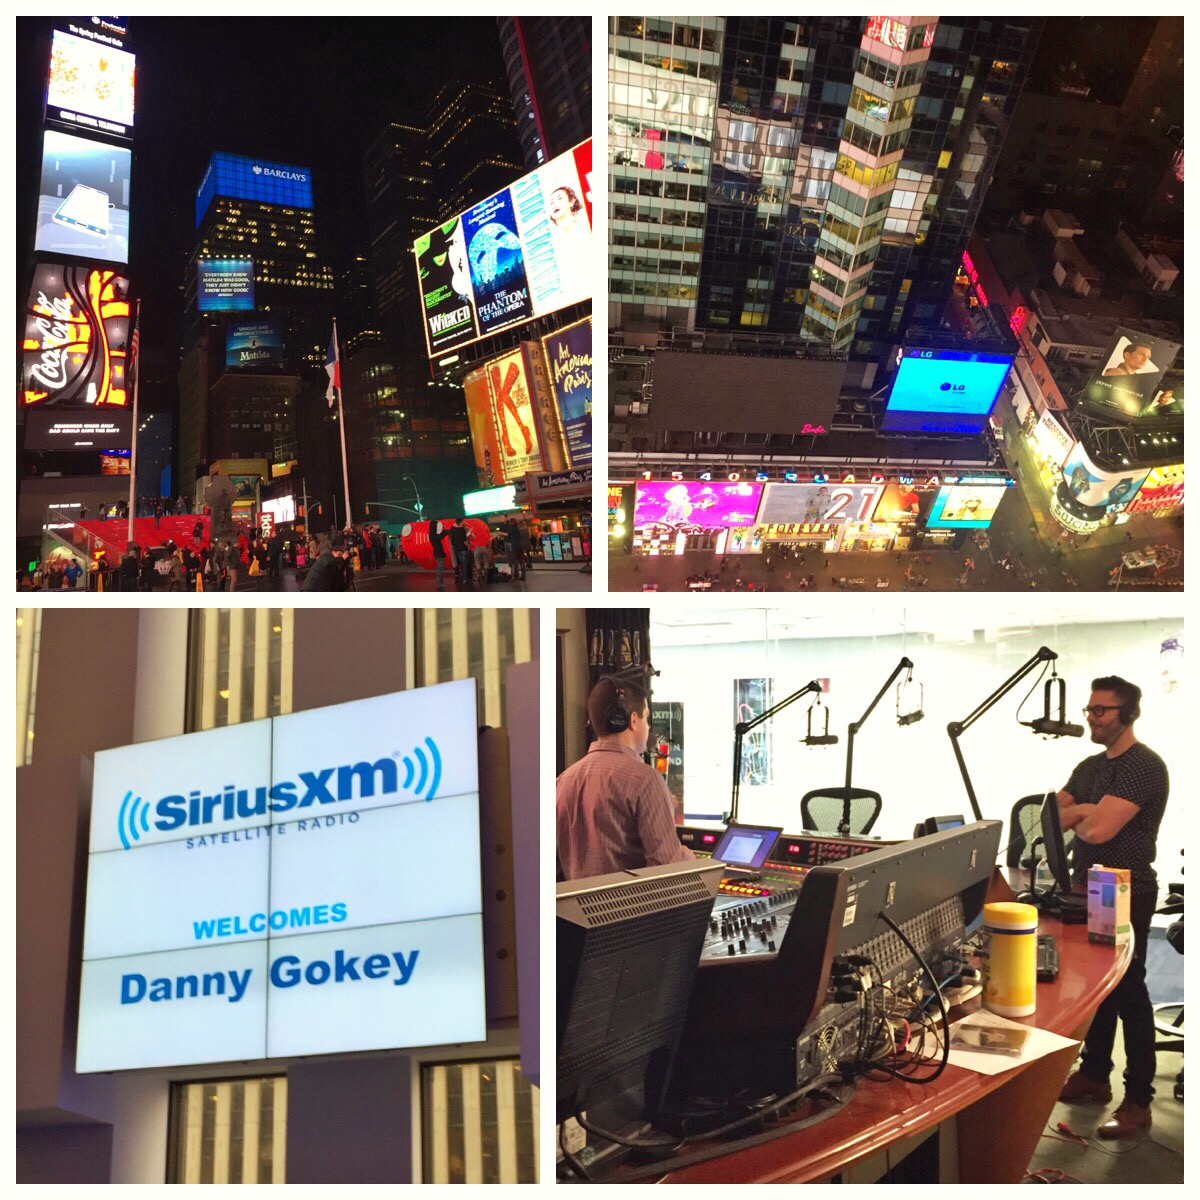 The Message SiriusXM Danny Gokey